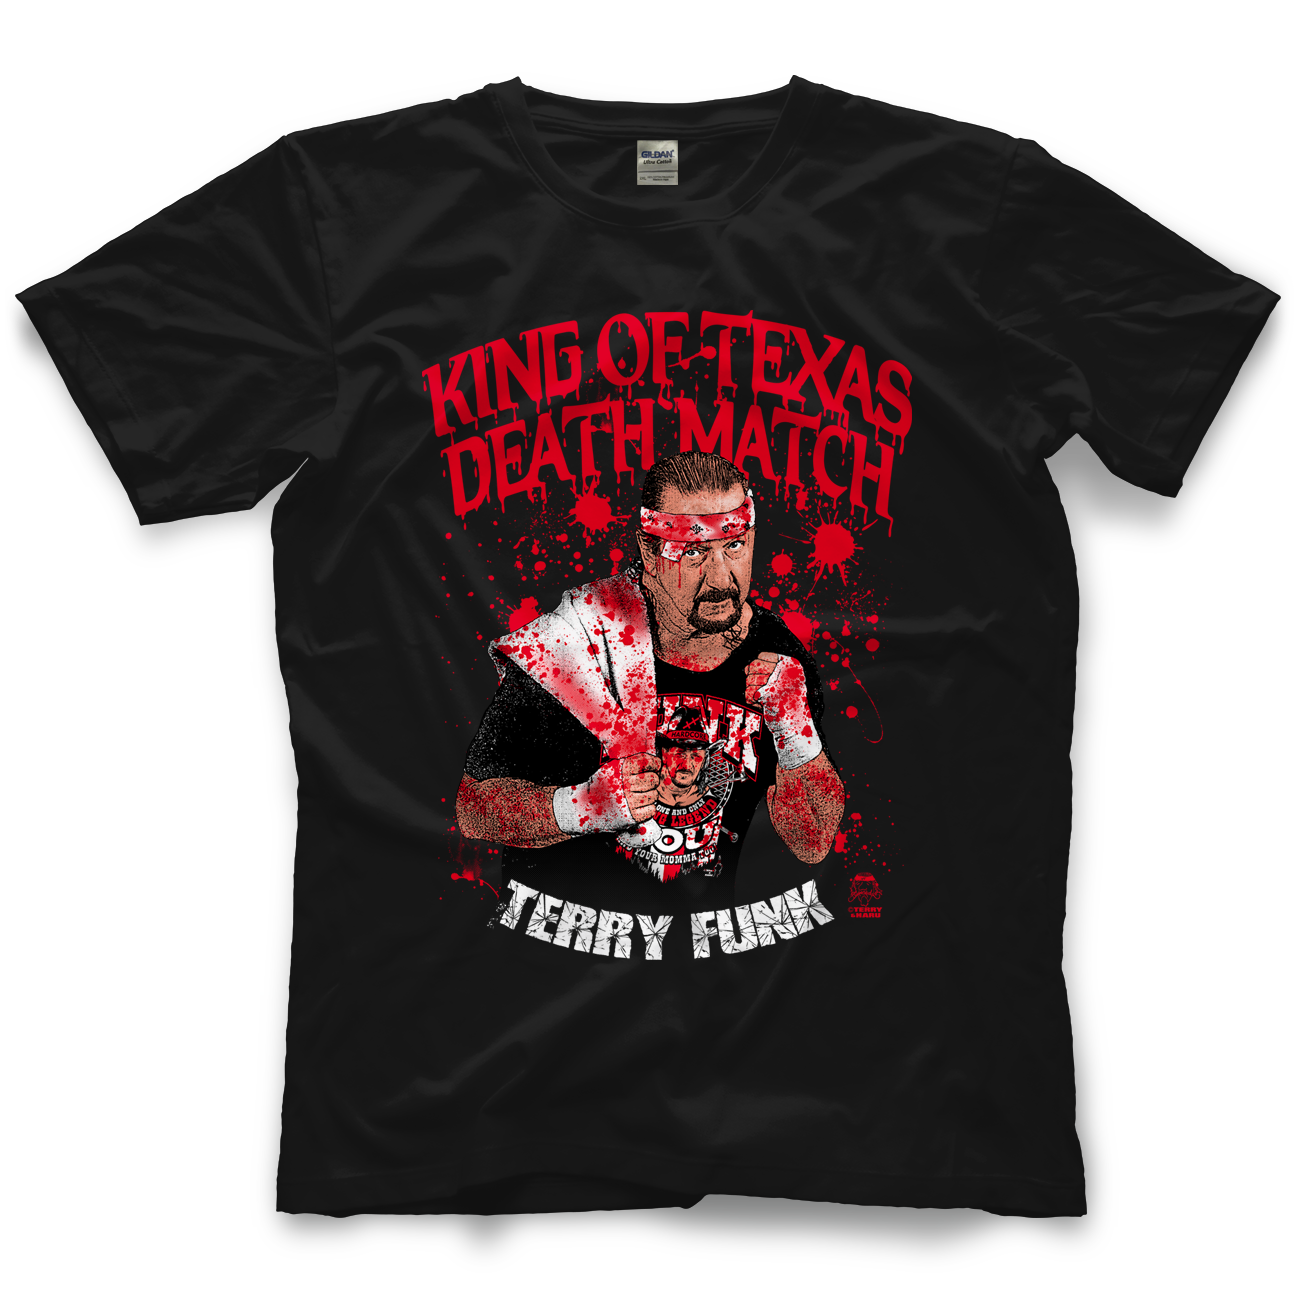 King of the Texas Death Match